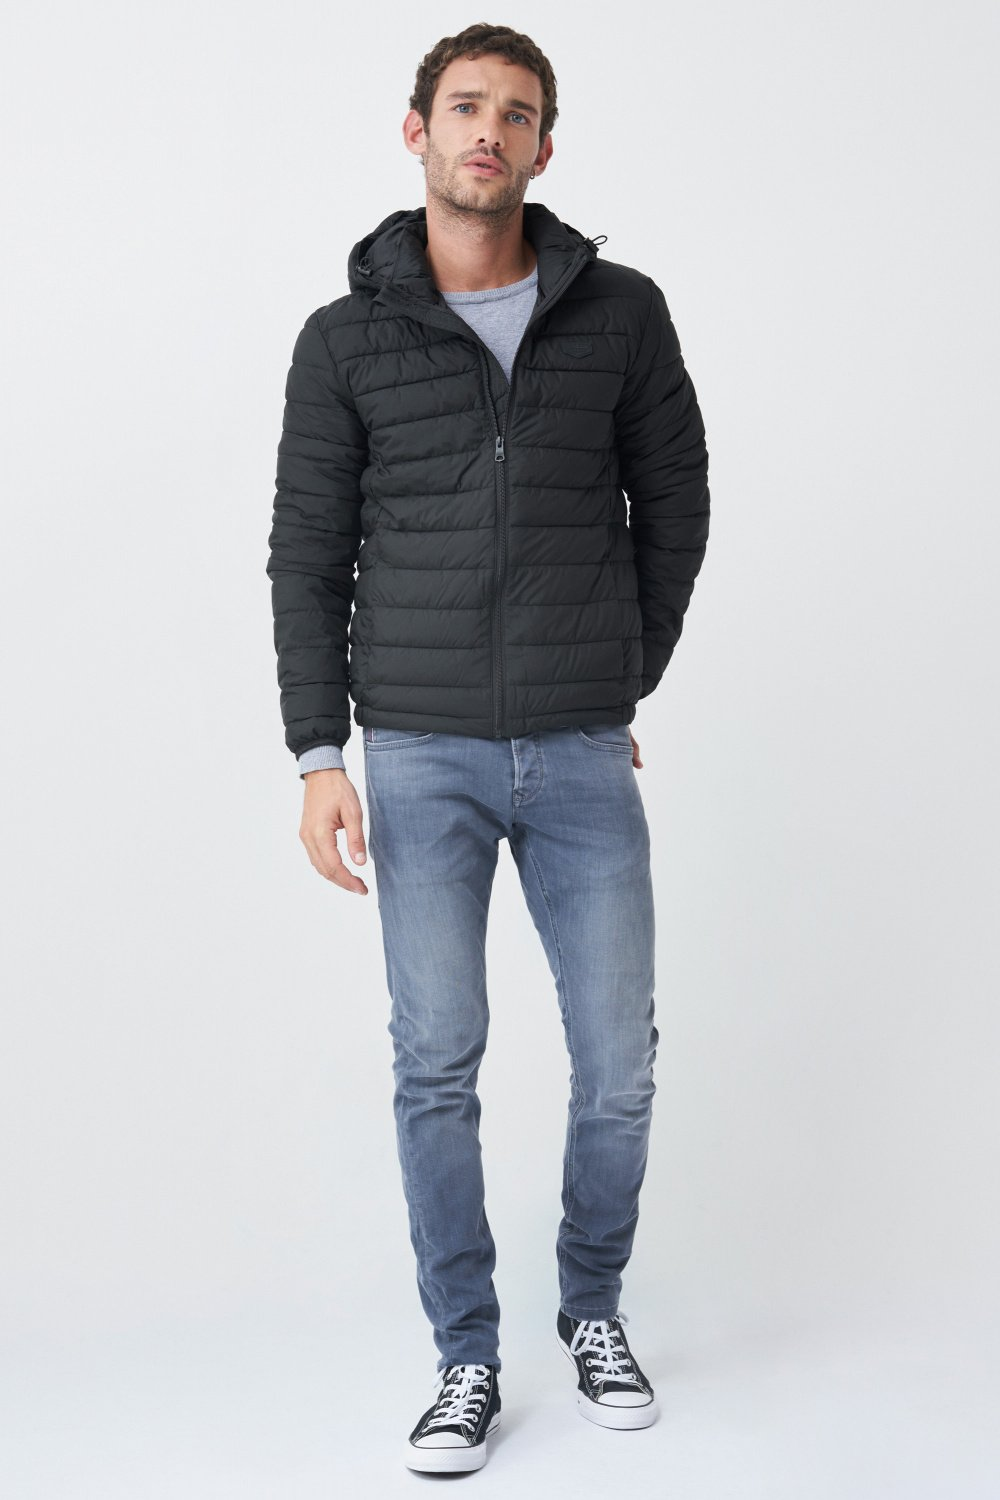 Short Fellex puffer jacket - Salsa